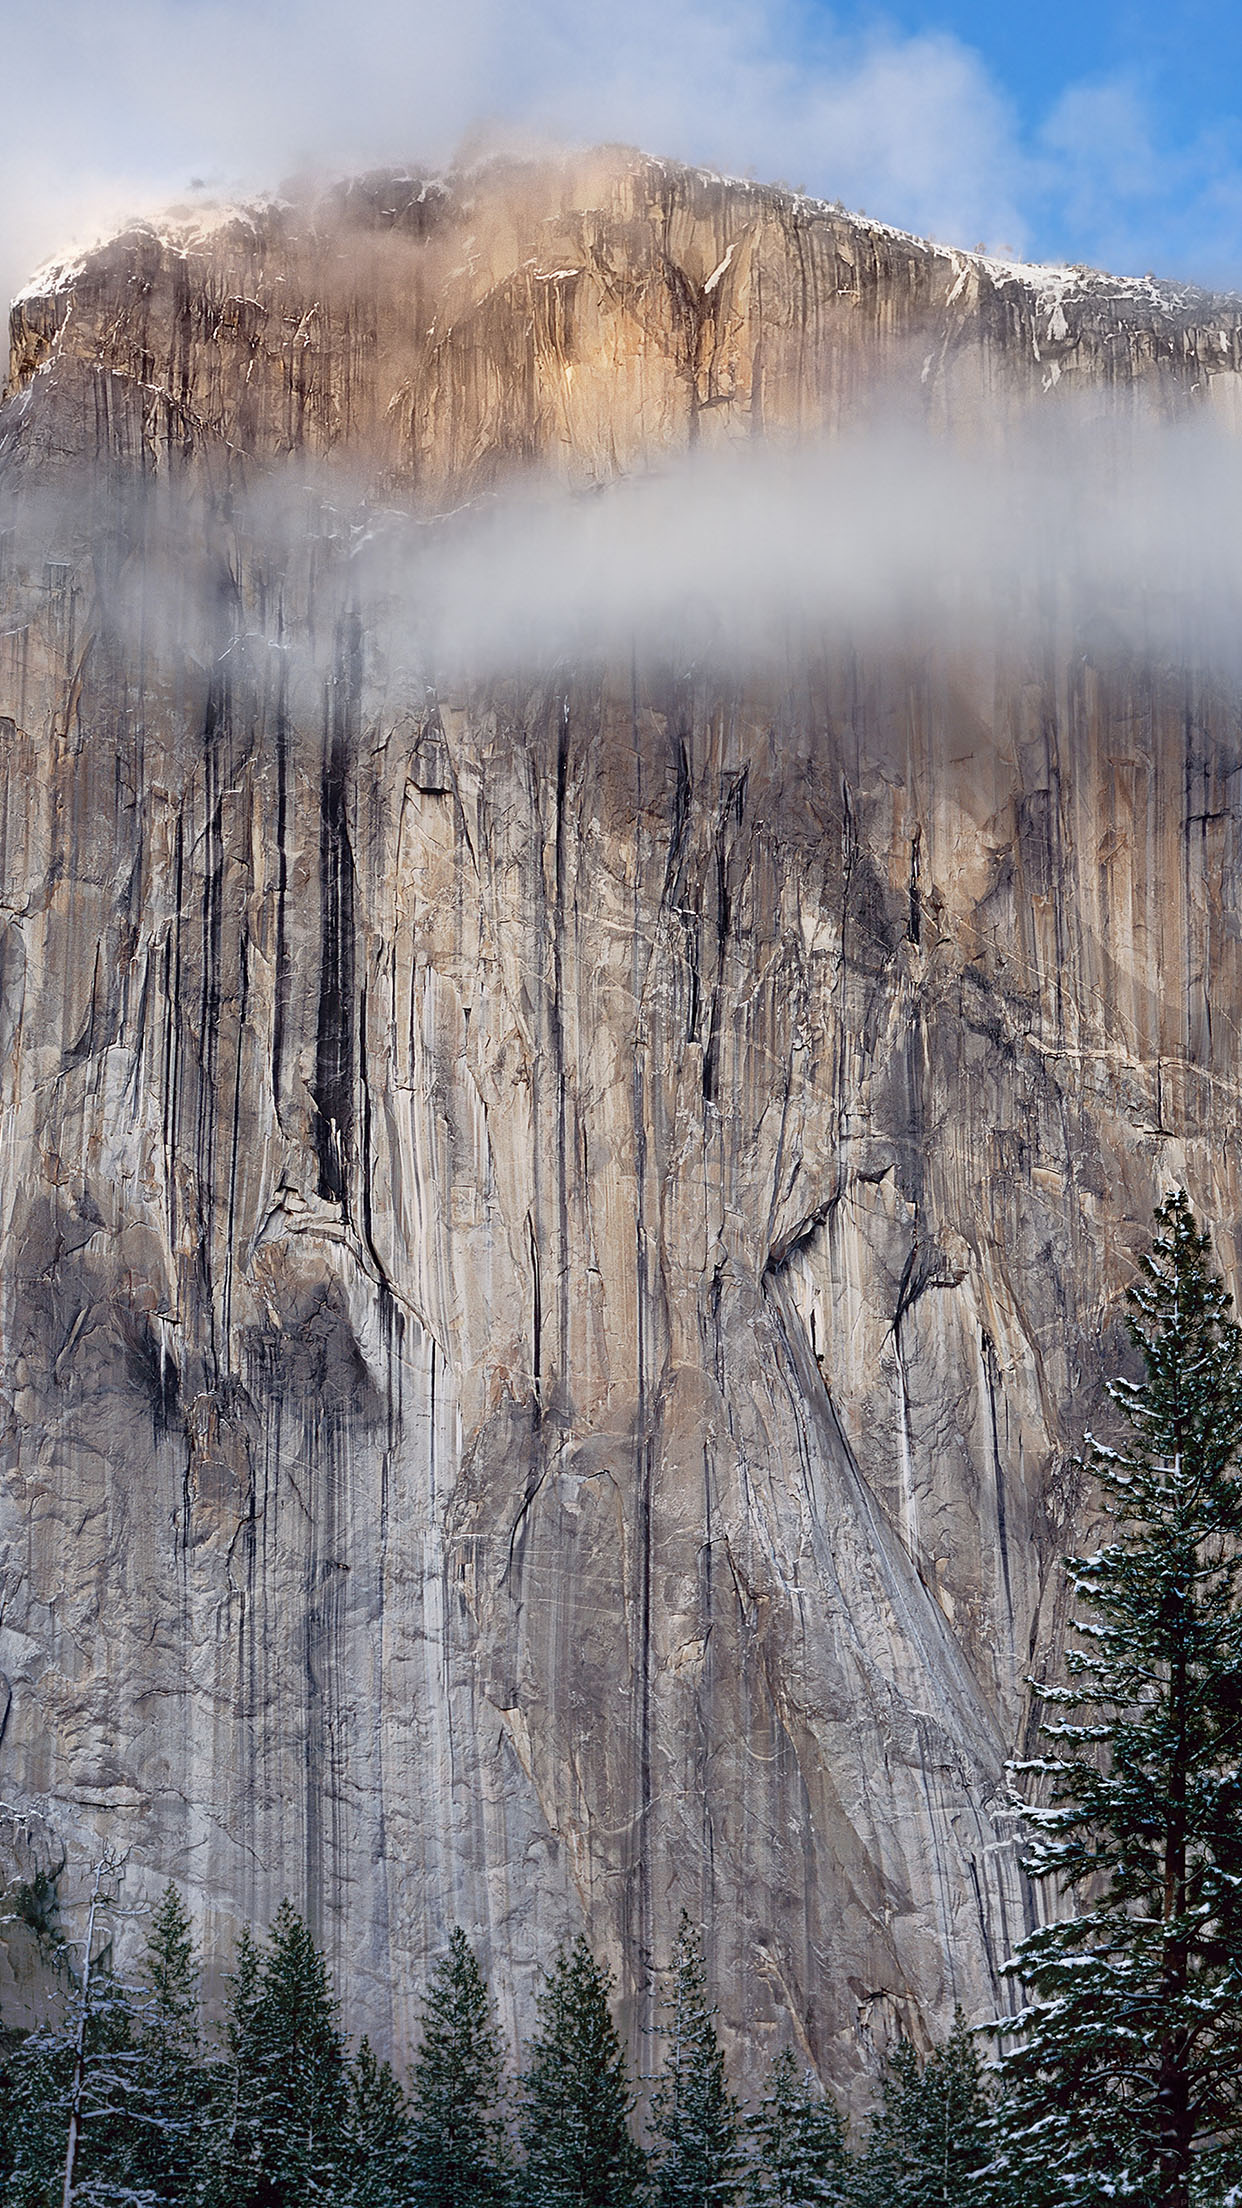 Fall Wallpaper For Your Phone Yosemite National Park Wallpapers For Iphone And Ipad